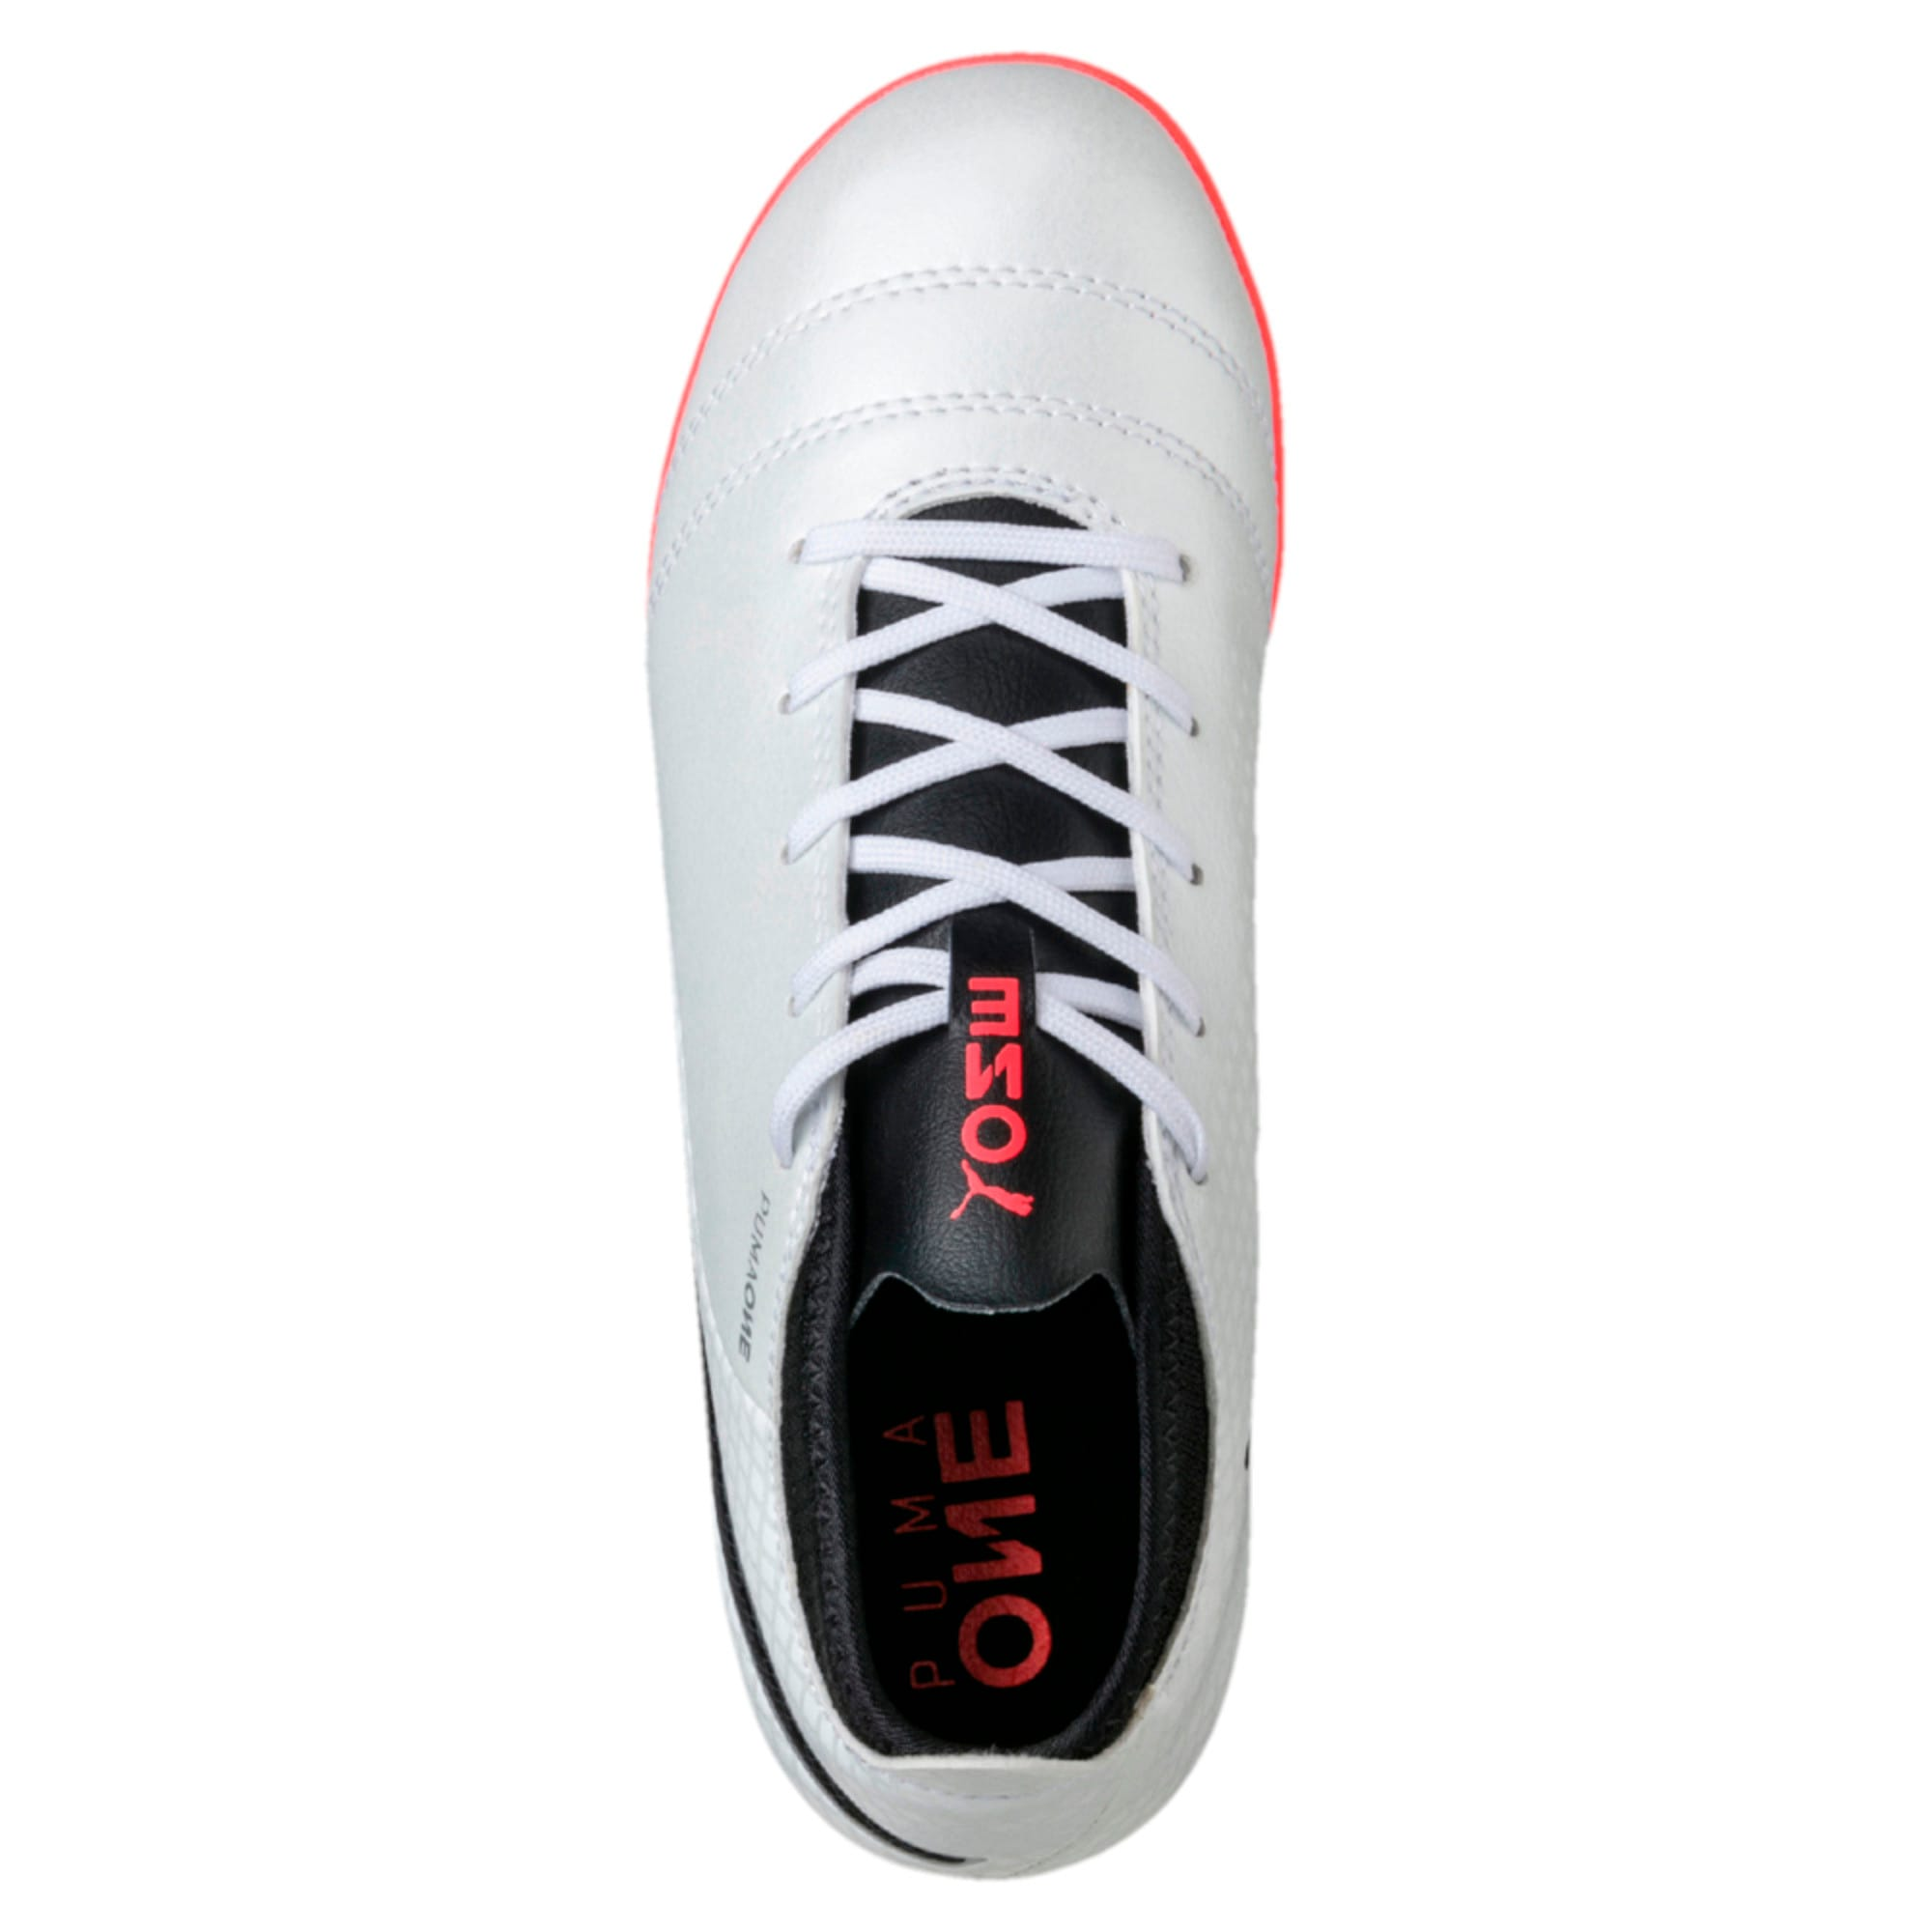 Thumbnail 2 of ONE 17.4 TT Kids' Football Boots, White-Black-Coral, medium-IND